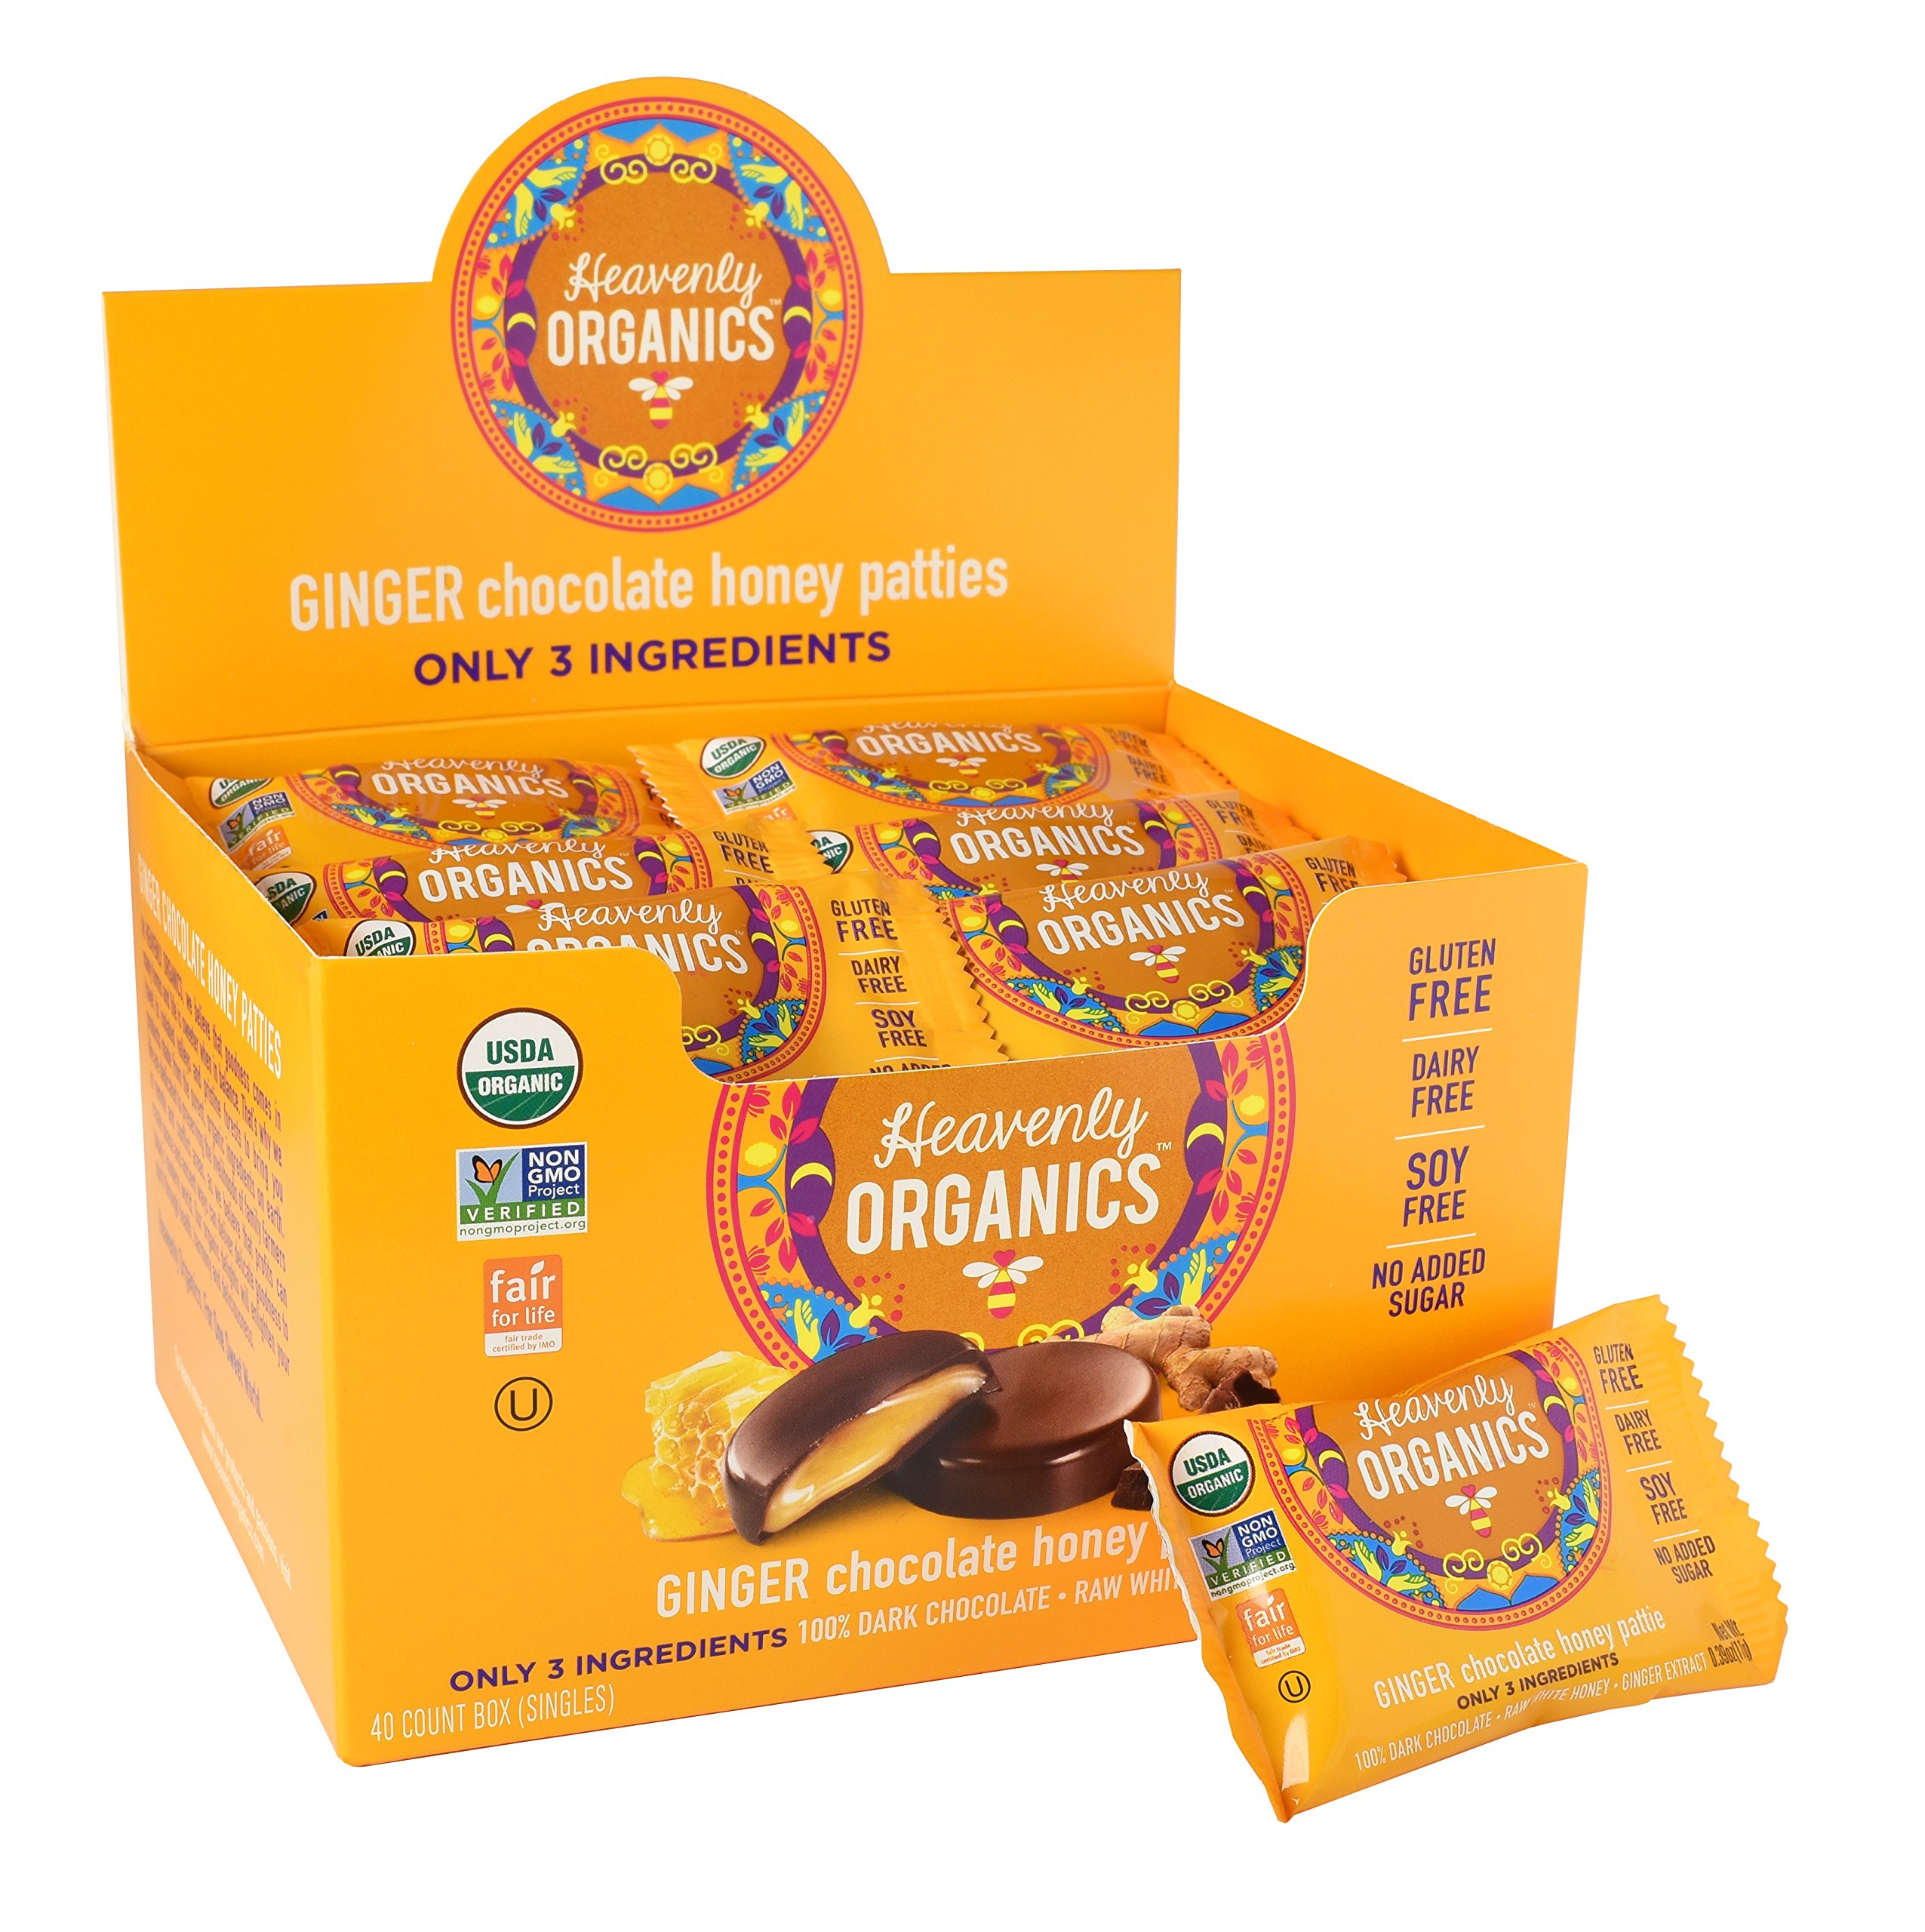 Heavenly Organics Honey Pattie, Chocolate Ginger, 40 Packages by Heavenly Organics